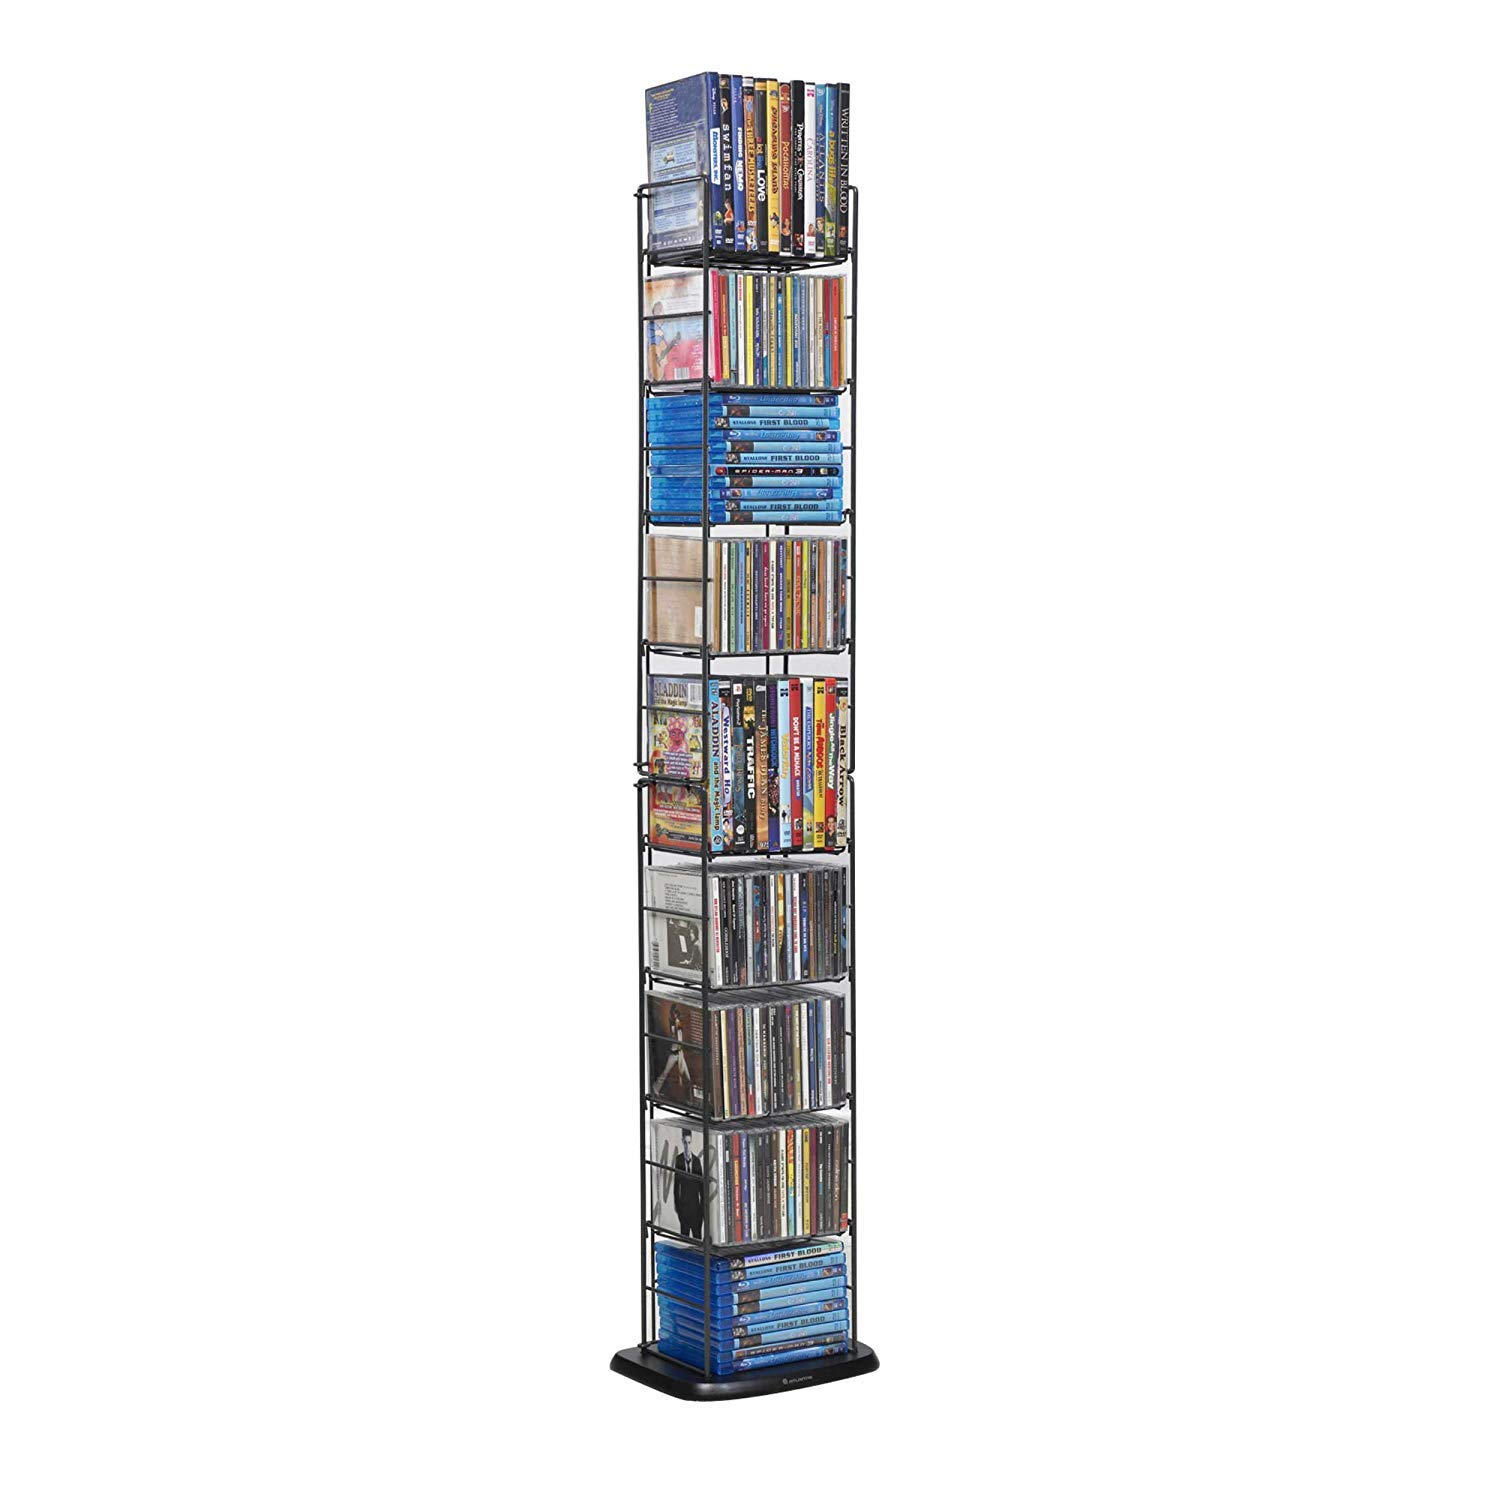 Atlantic Adjustable Wire Media Rack - Heavy Gauge Steel, Holds 153CDs 05 72 DVDs, 8 Adjustable Shelves PN78205091 (Brand Edition) by Atlantic